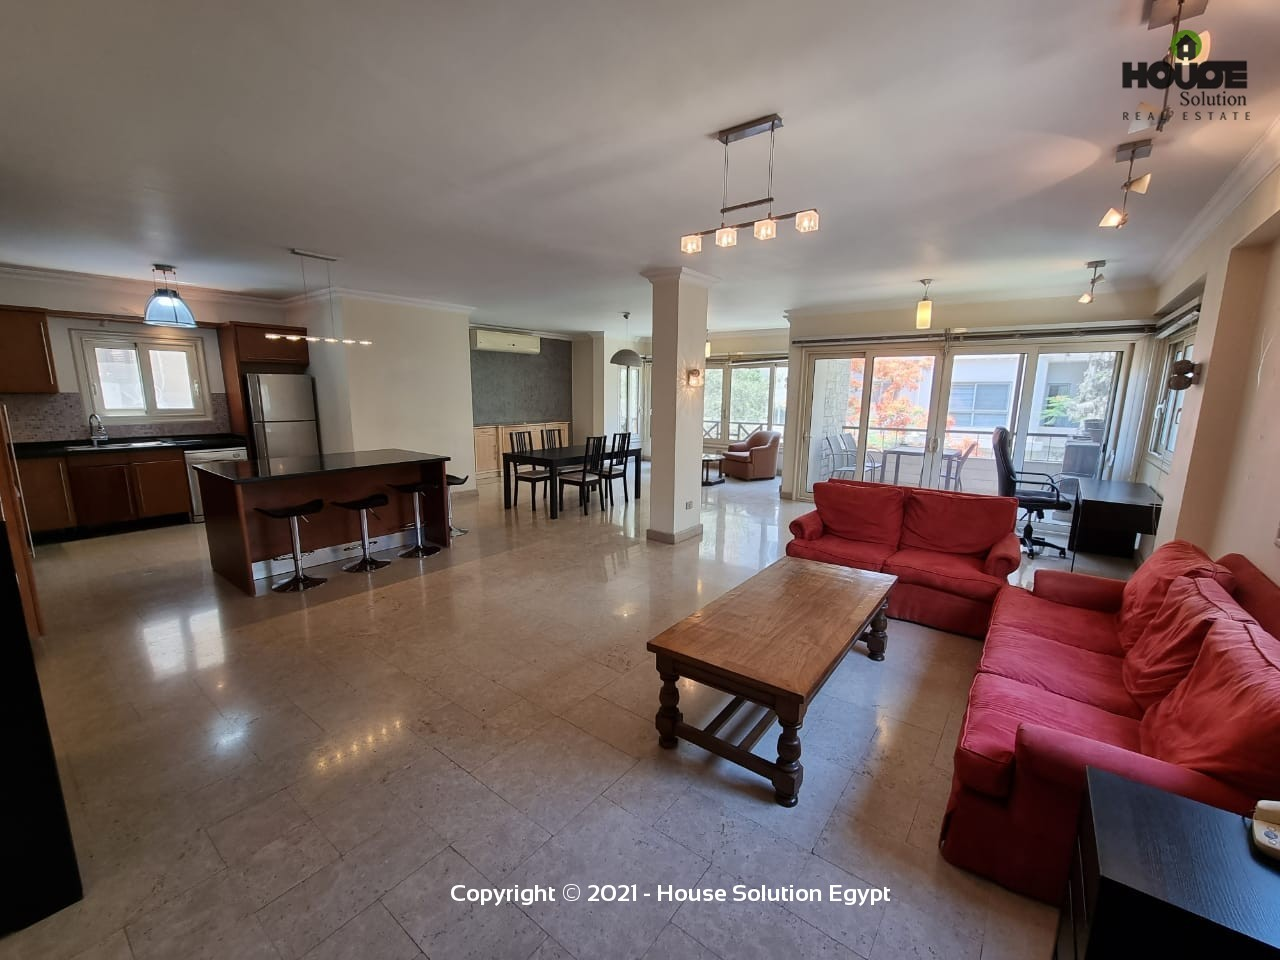 Modern Furnished Apartment With Shared Roof For Rent In Sarayat El Maadi Cairo Egypt - 4964 Featured Image